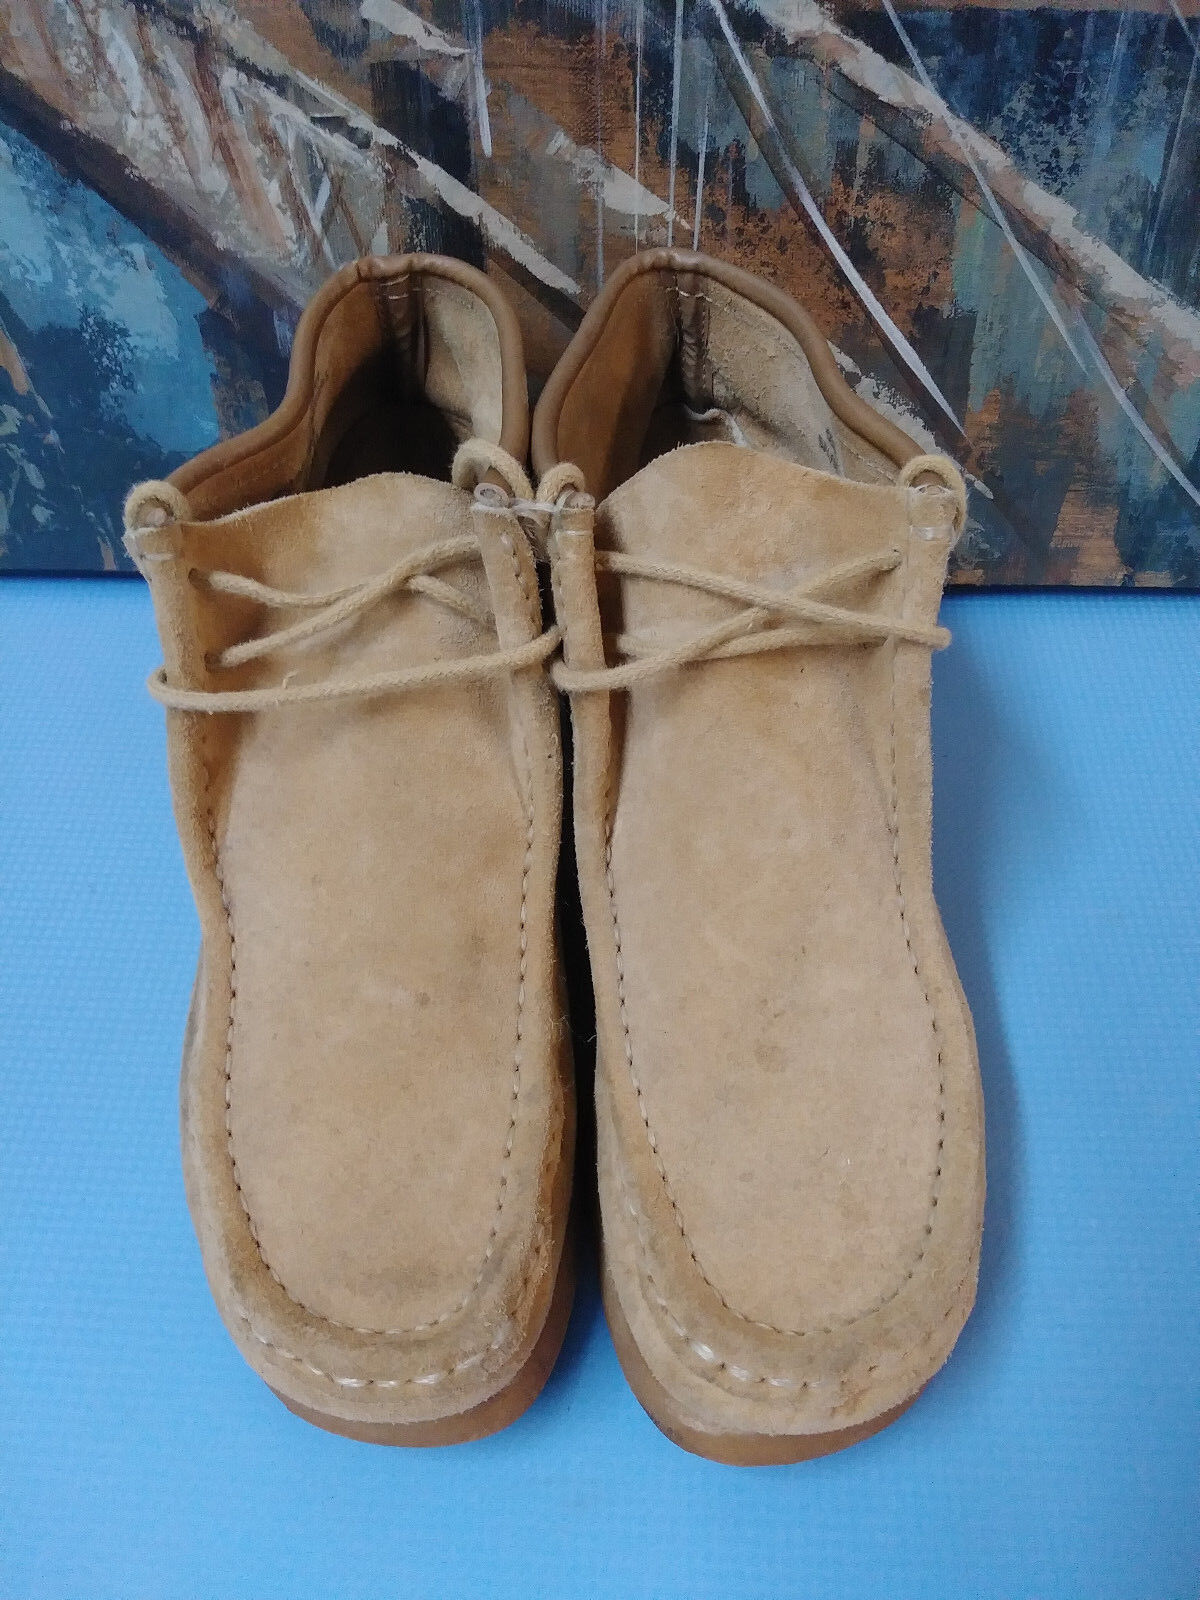 SUBURBANS ANKLES BOOTS,  9.5 D Uomo TAN made in Spain